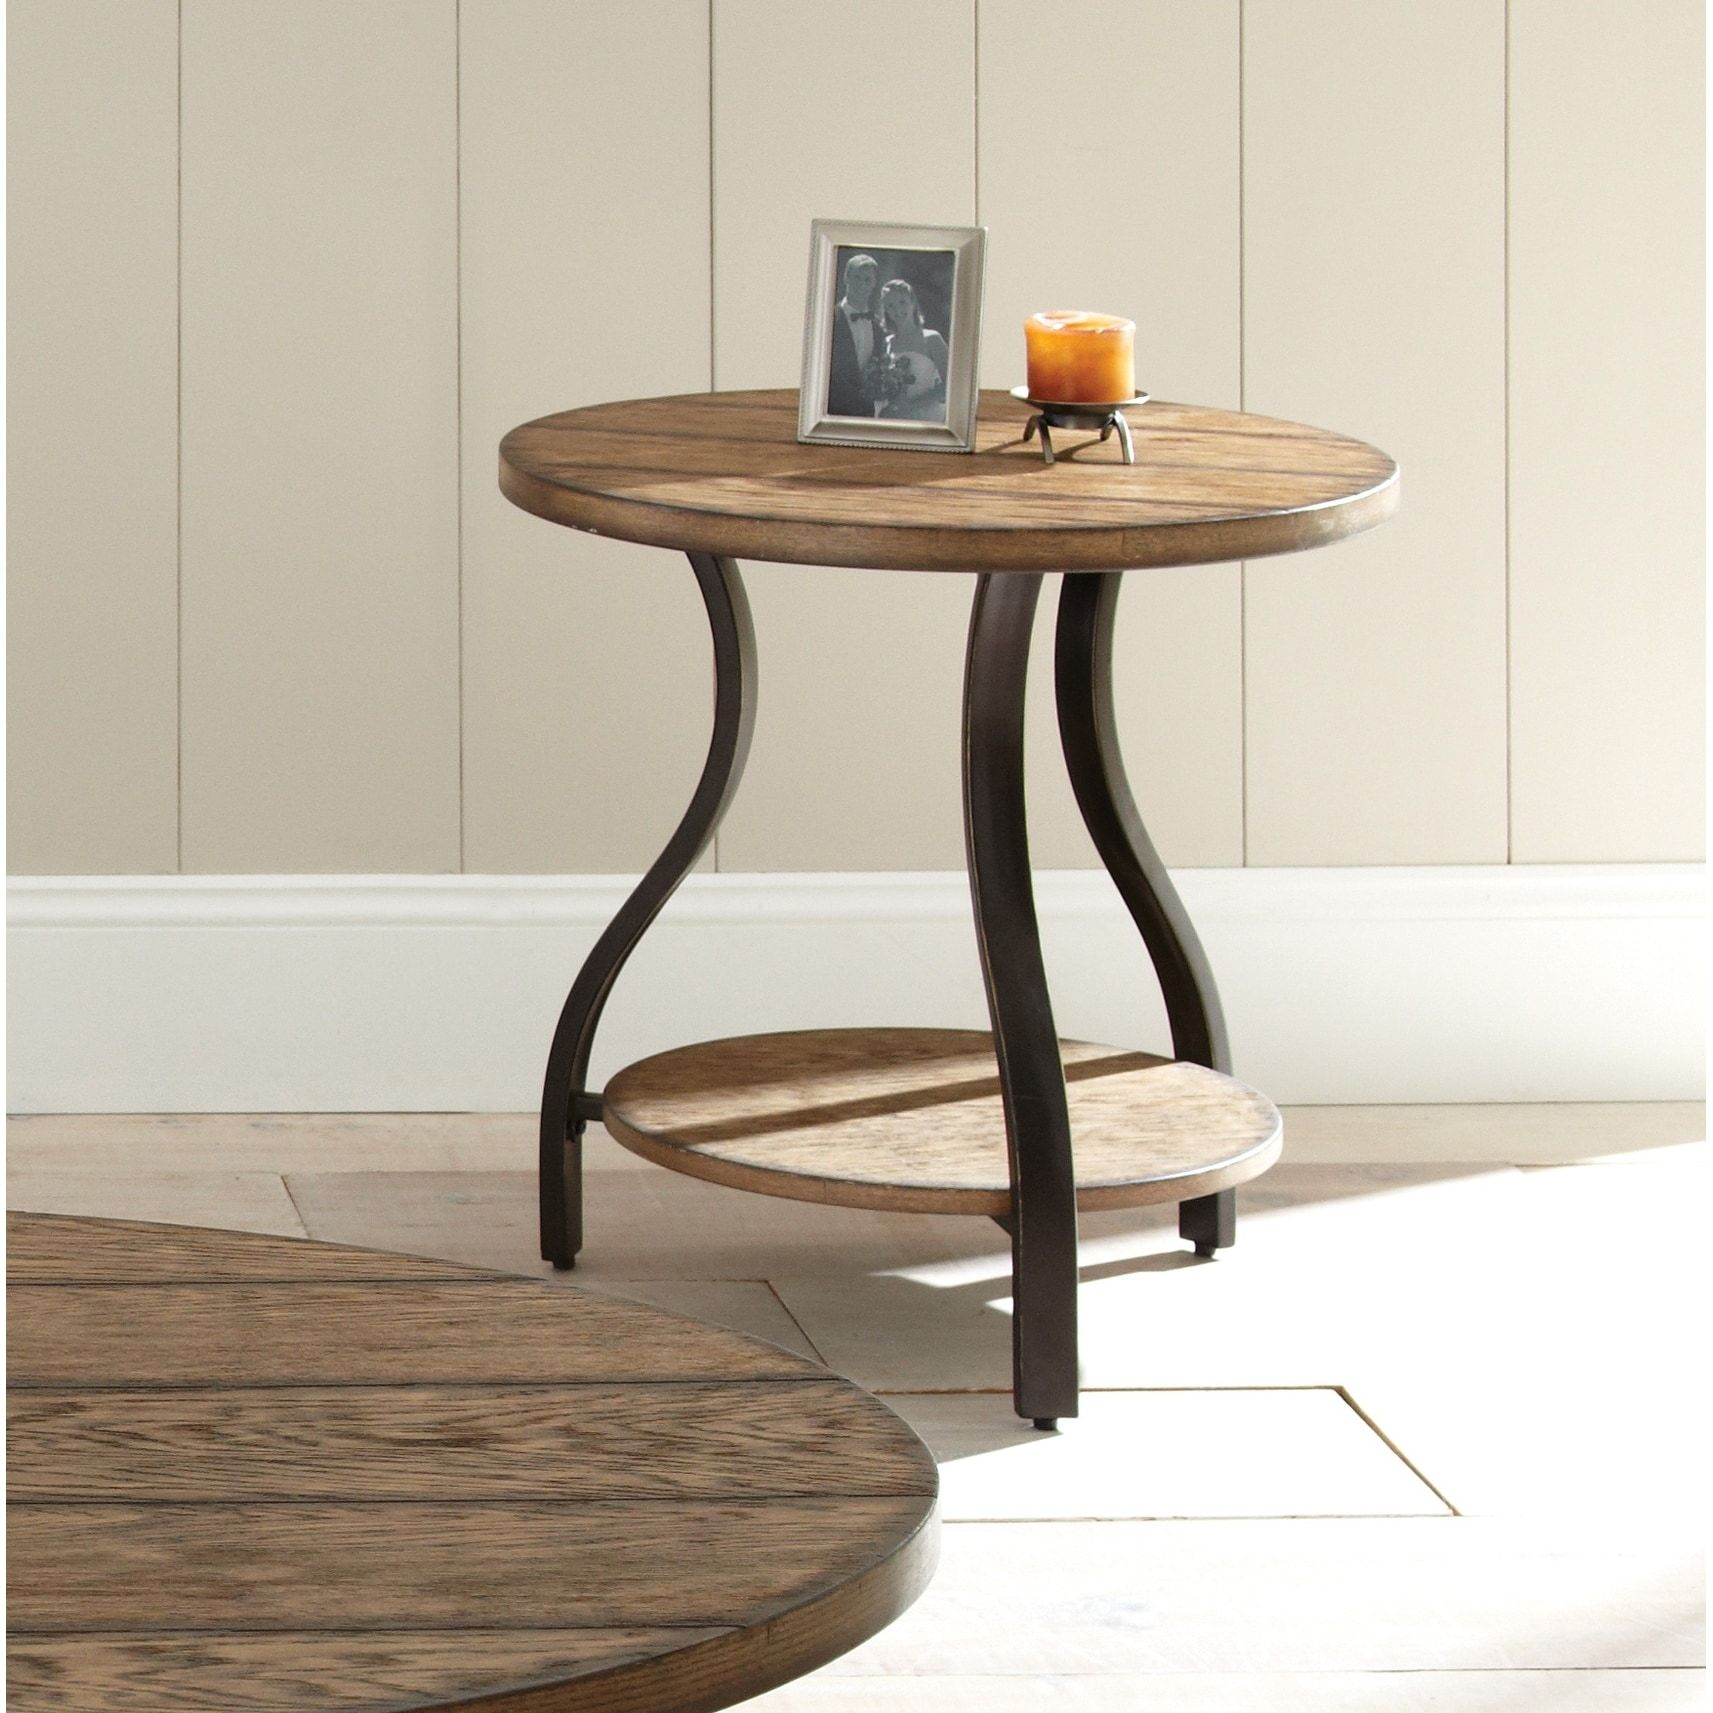 Overstock Com Online Shopping Bedding Furniture Electronics Jewelry Clothing More In 2021 End Tables Metal End Tables Wood End Tables [ 1713 x 1713 Pixel ]